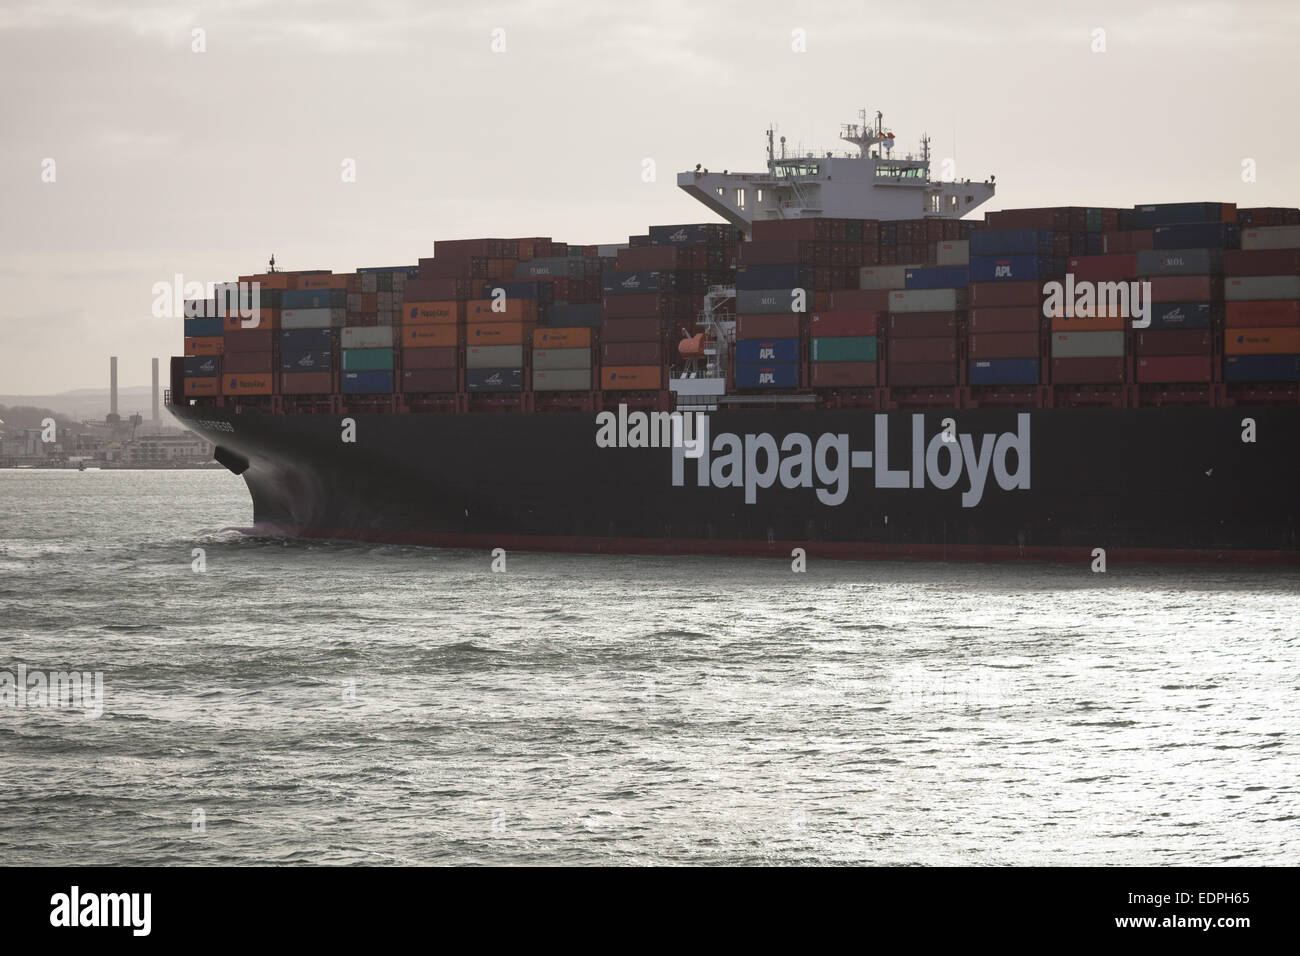 Il Hapag-Lloyds nave cargo, Essen Express in partenza Southampton. Immagini Stock